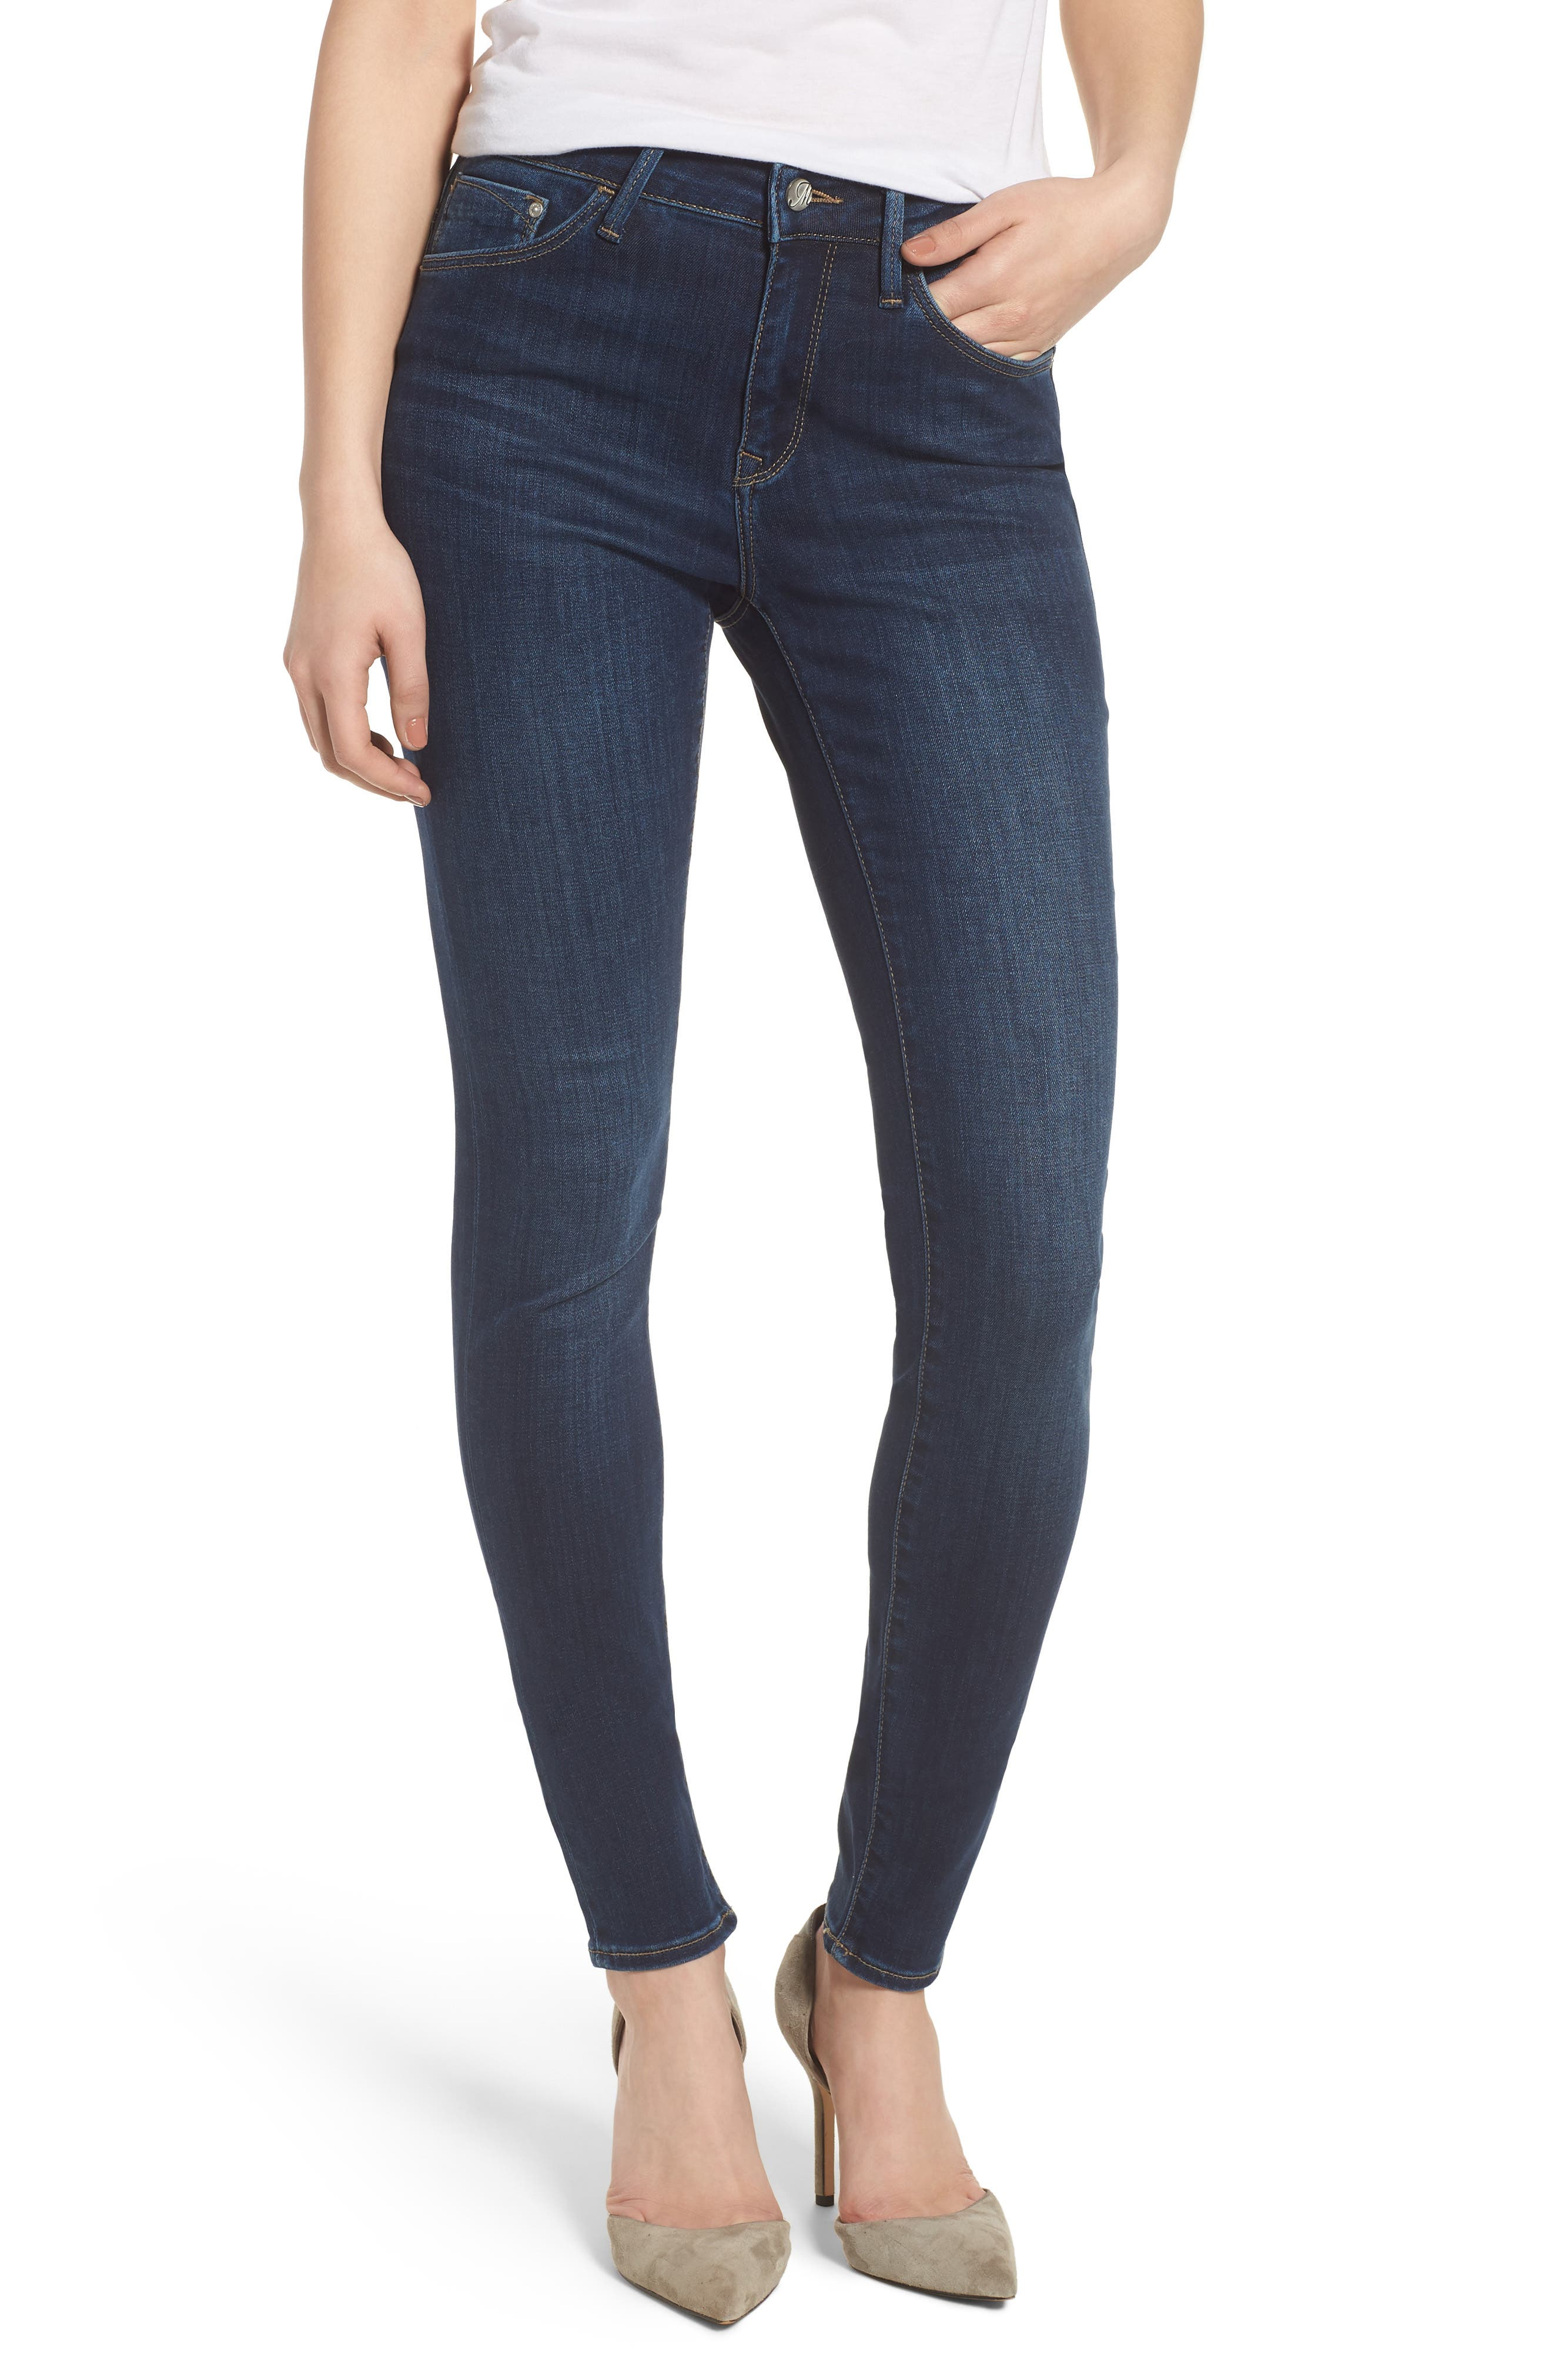 Alissa Skinny Jeans,                         Main,                         color, 400